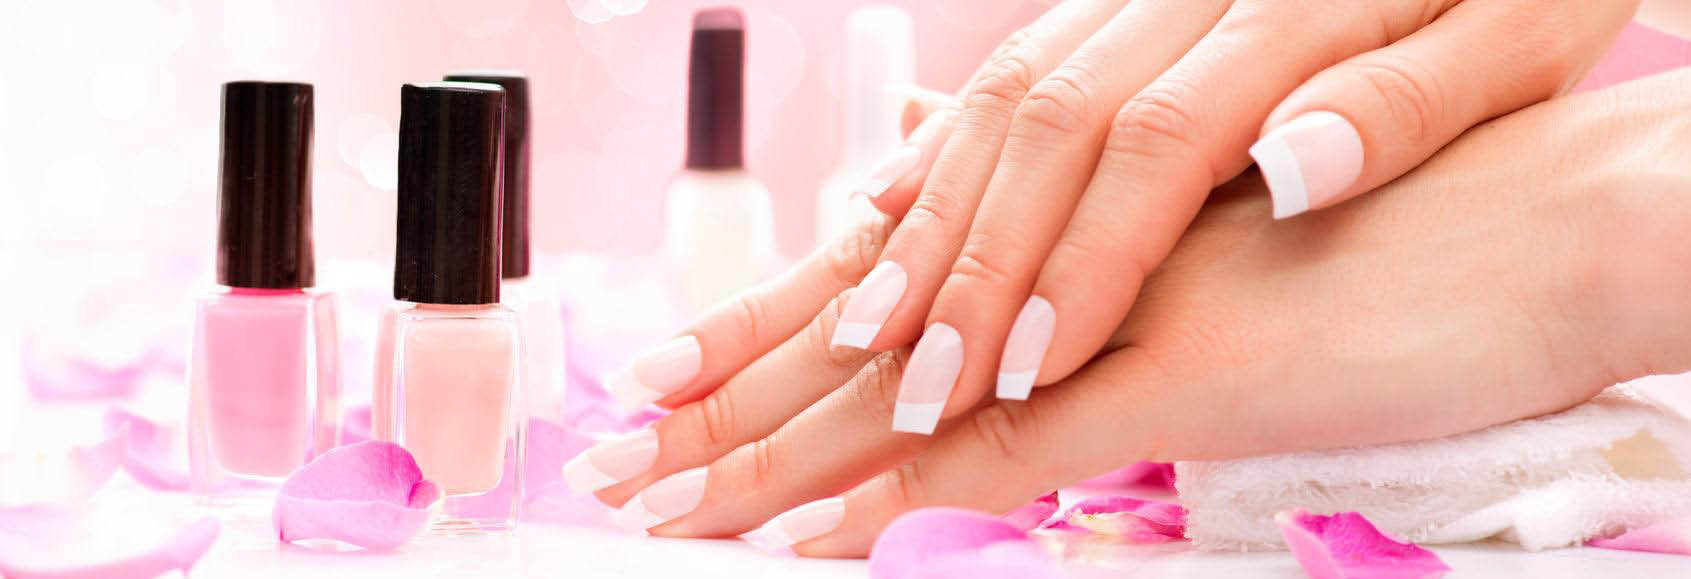 Mimi nails spa of bensalem in bensalem pa local coupons march mimi nails and spamimi nails bensalem paspa couponsmanicure coupons prinsesfo Image collections